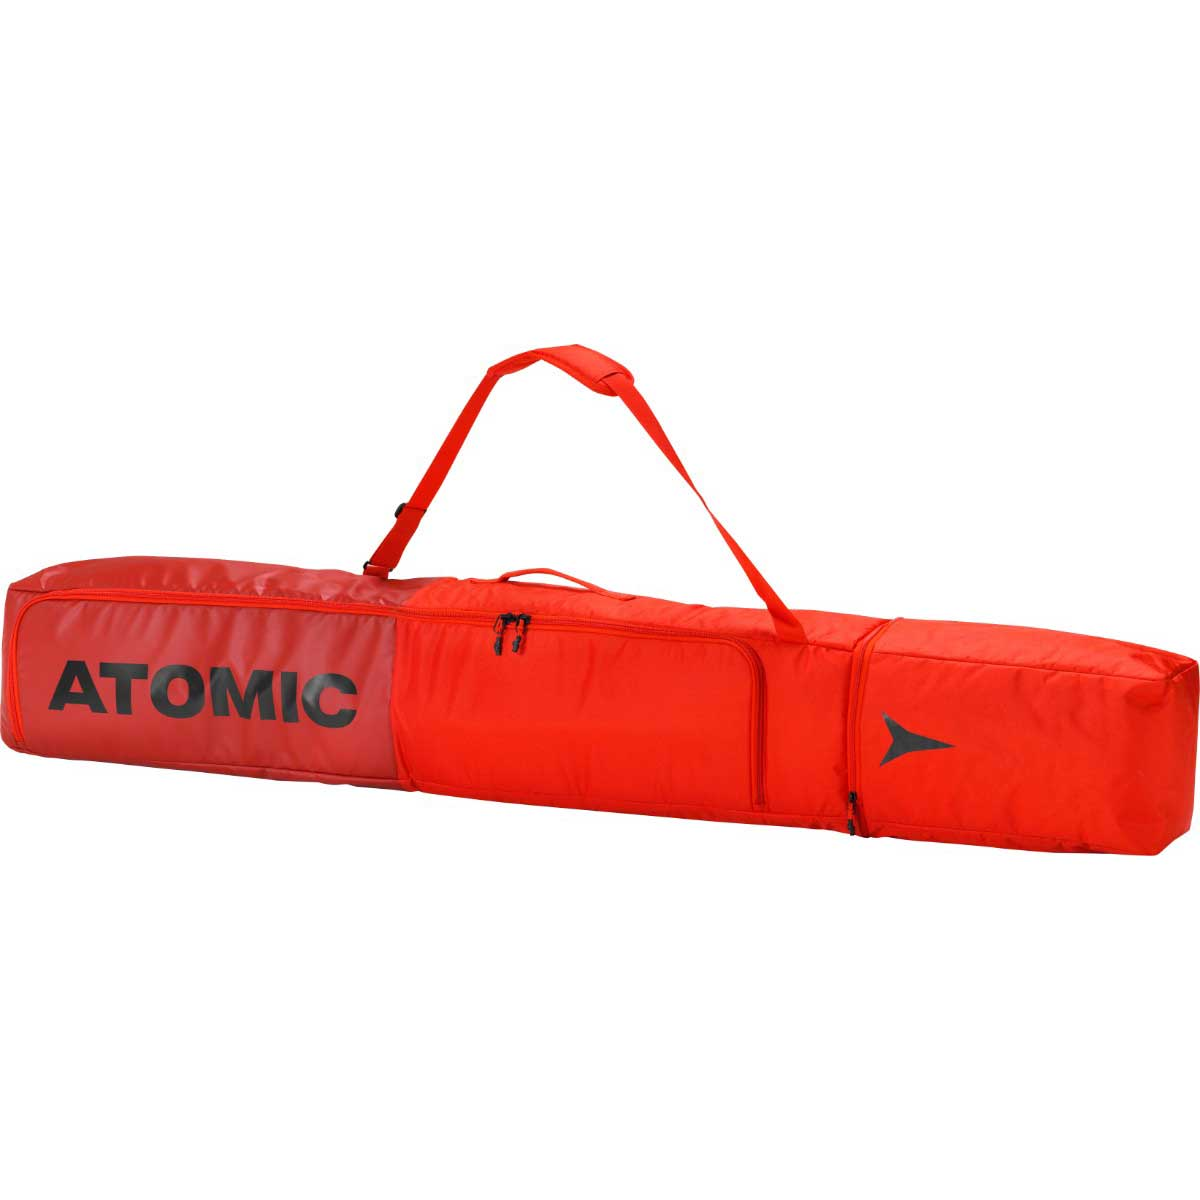 Atomic Double Ski Bag in red and bright red